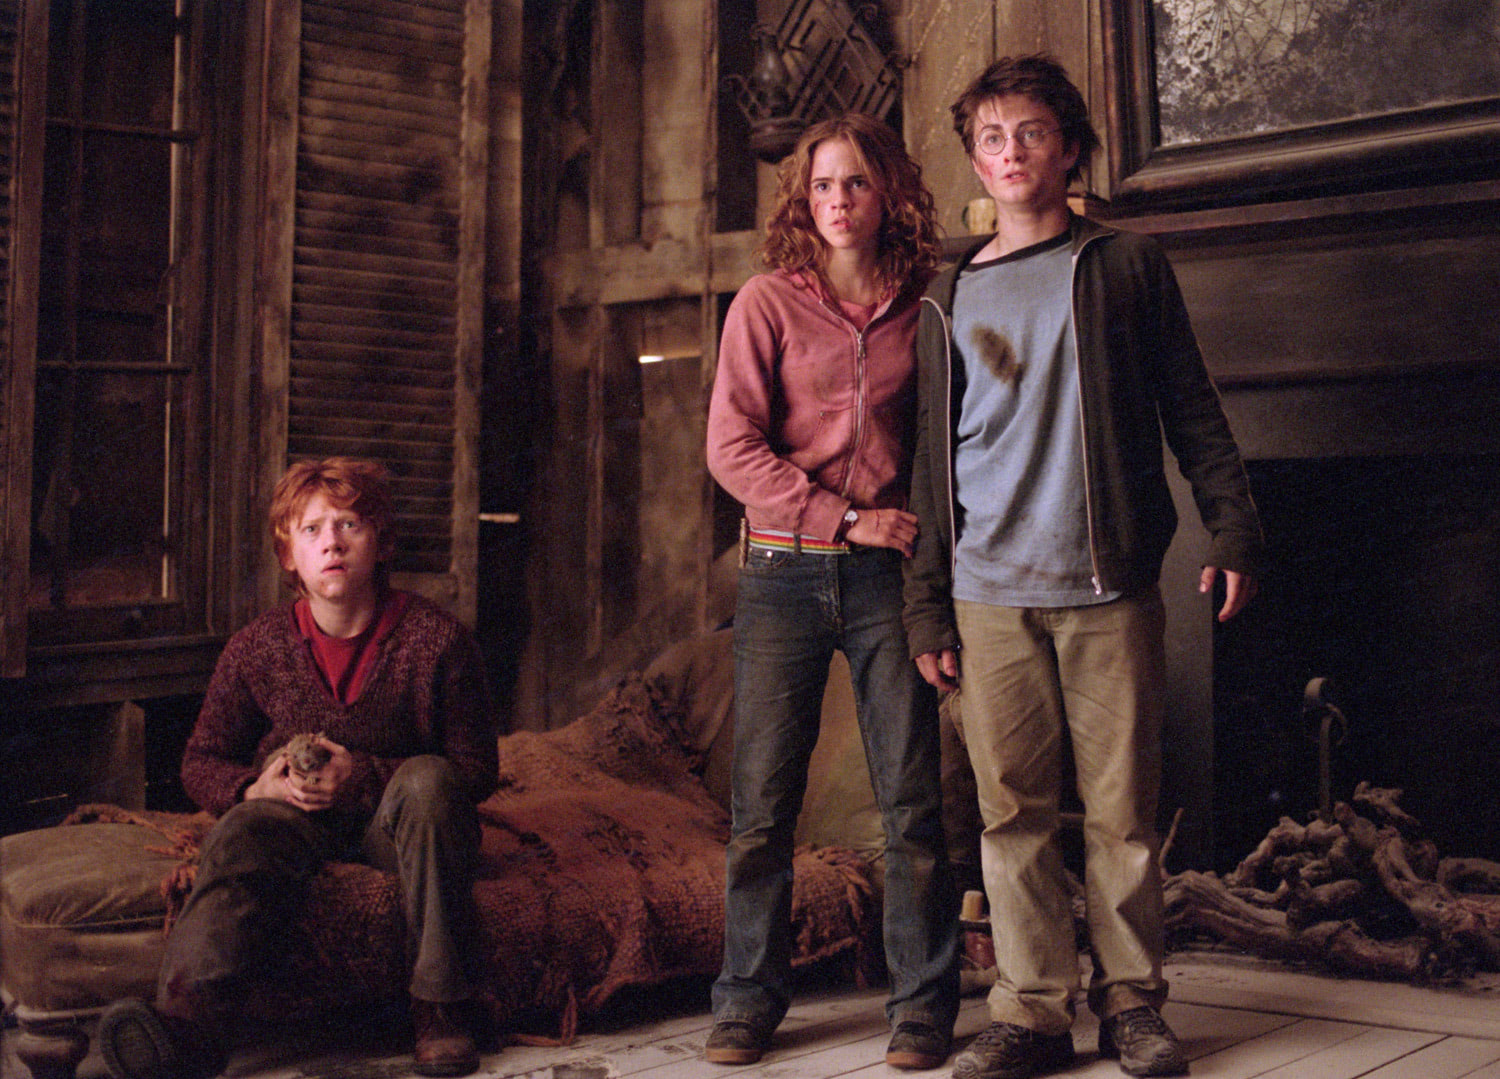 The trio in the Shrieking Shack